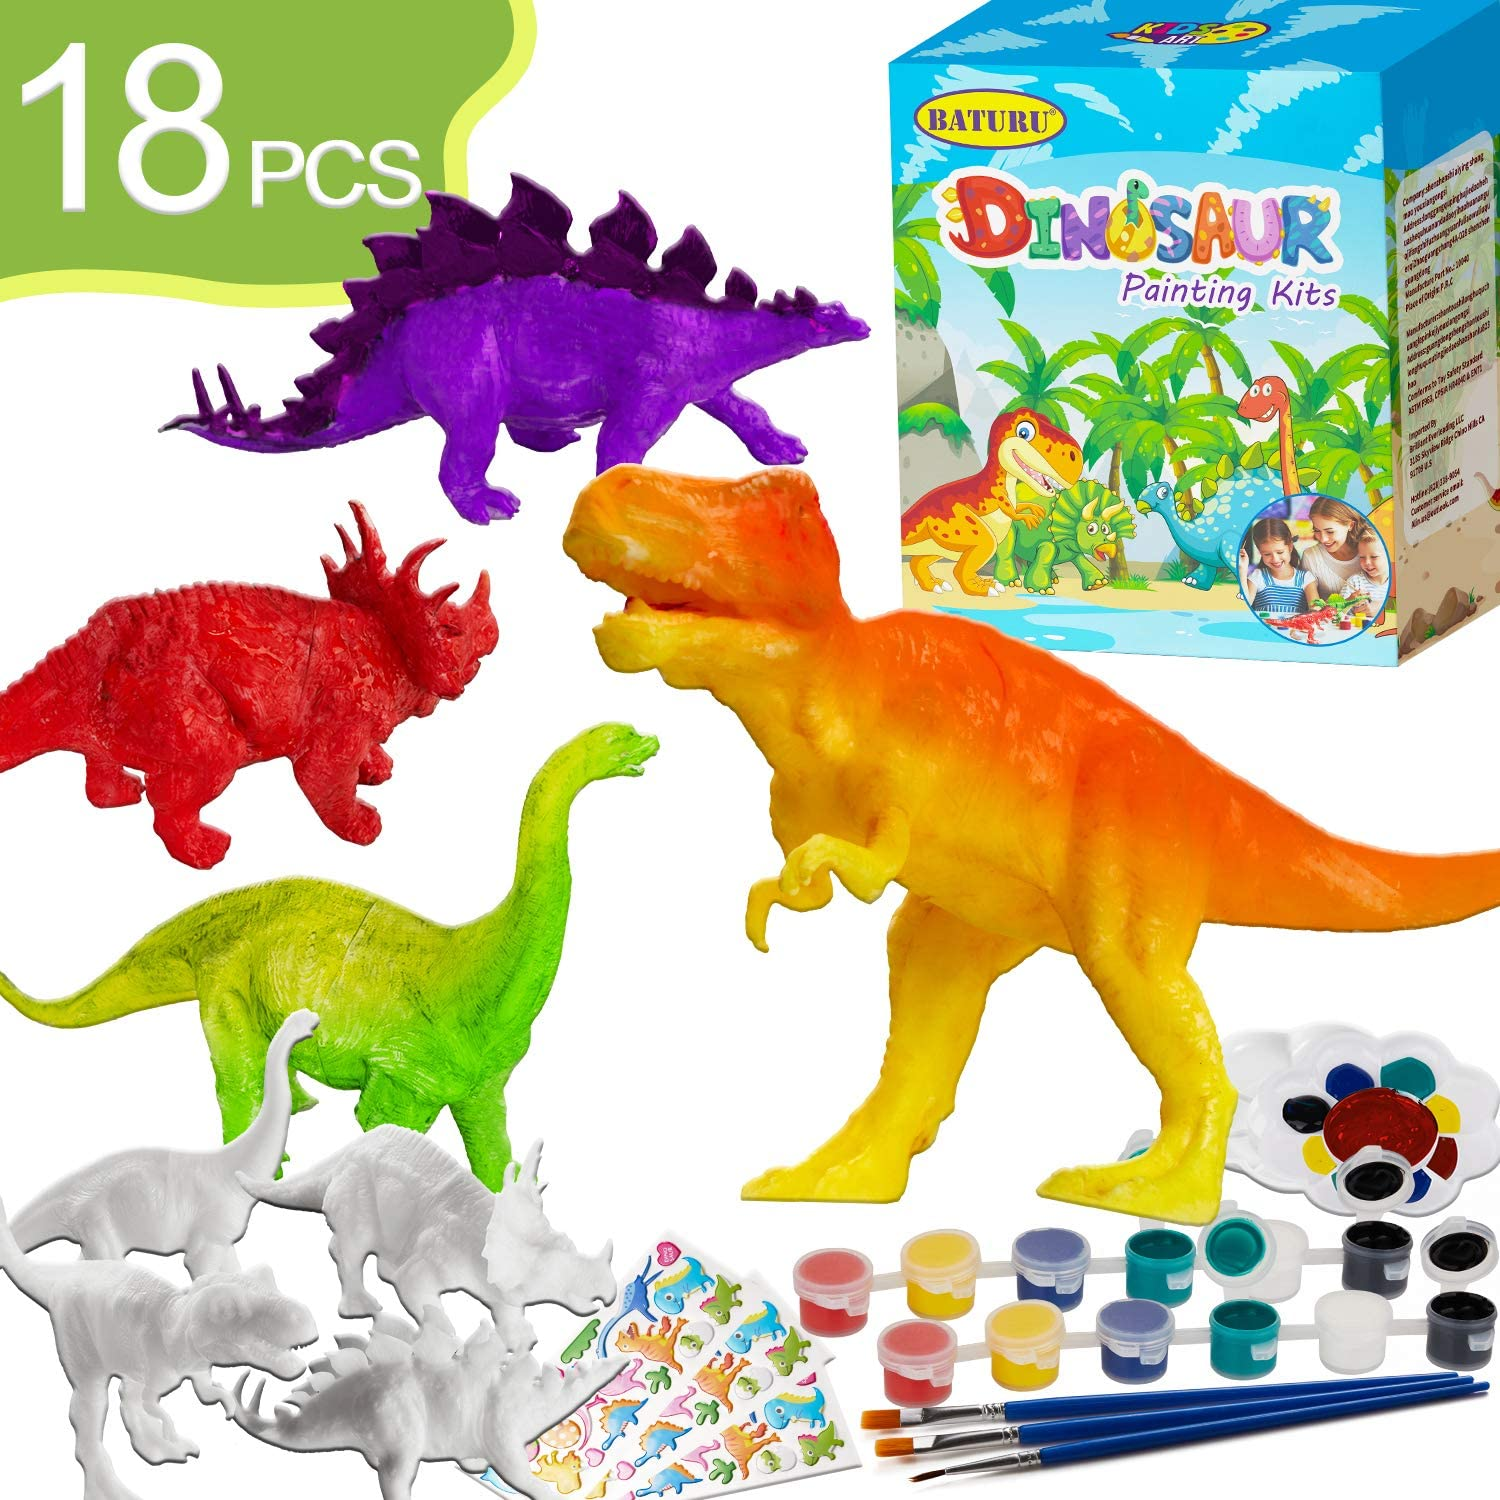 BATURU Dinosaur Painting Kits for Kids Toys, Arts and Crafts for Kids Ages 4-12,Party Favors for Kids